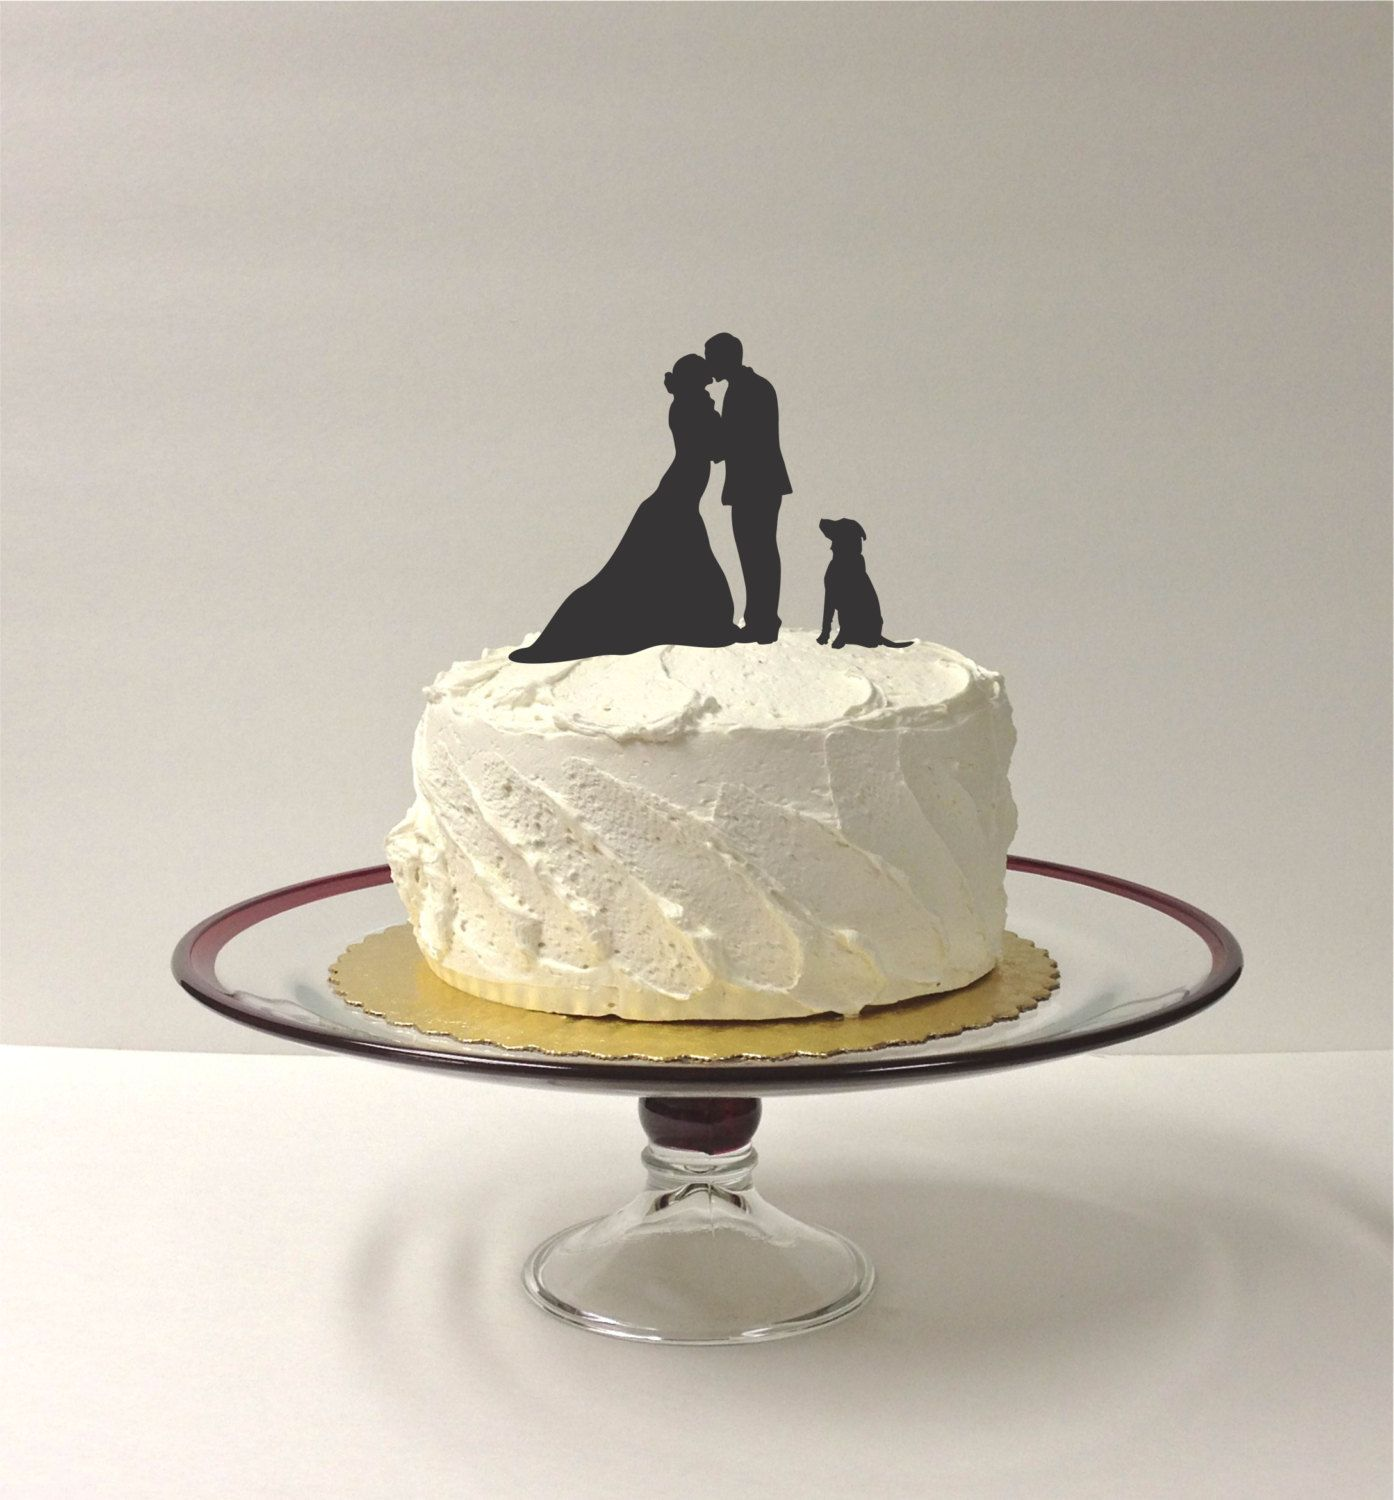 Made in usa silhouette cake topper with pet dog different dogs